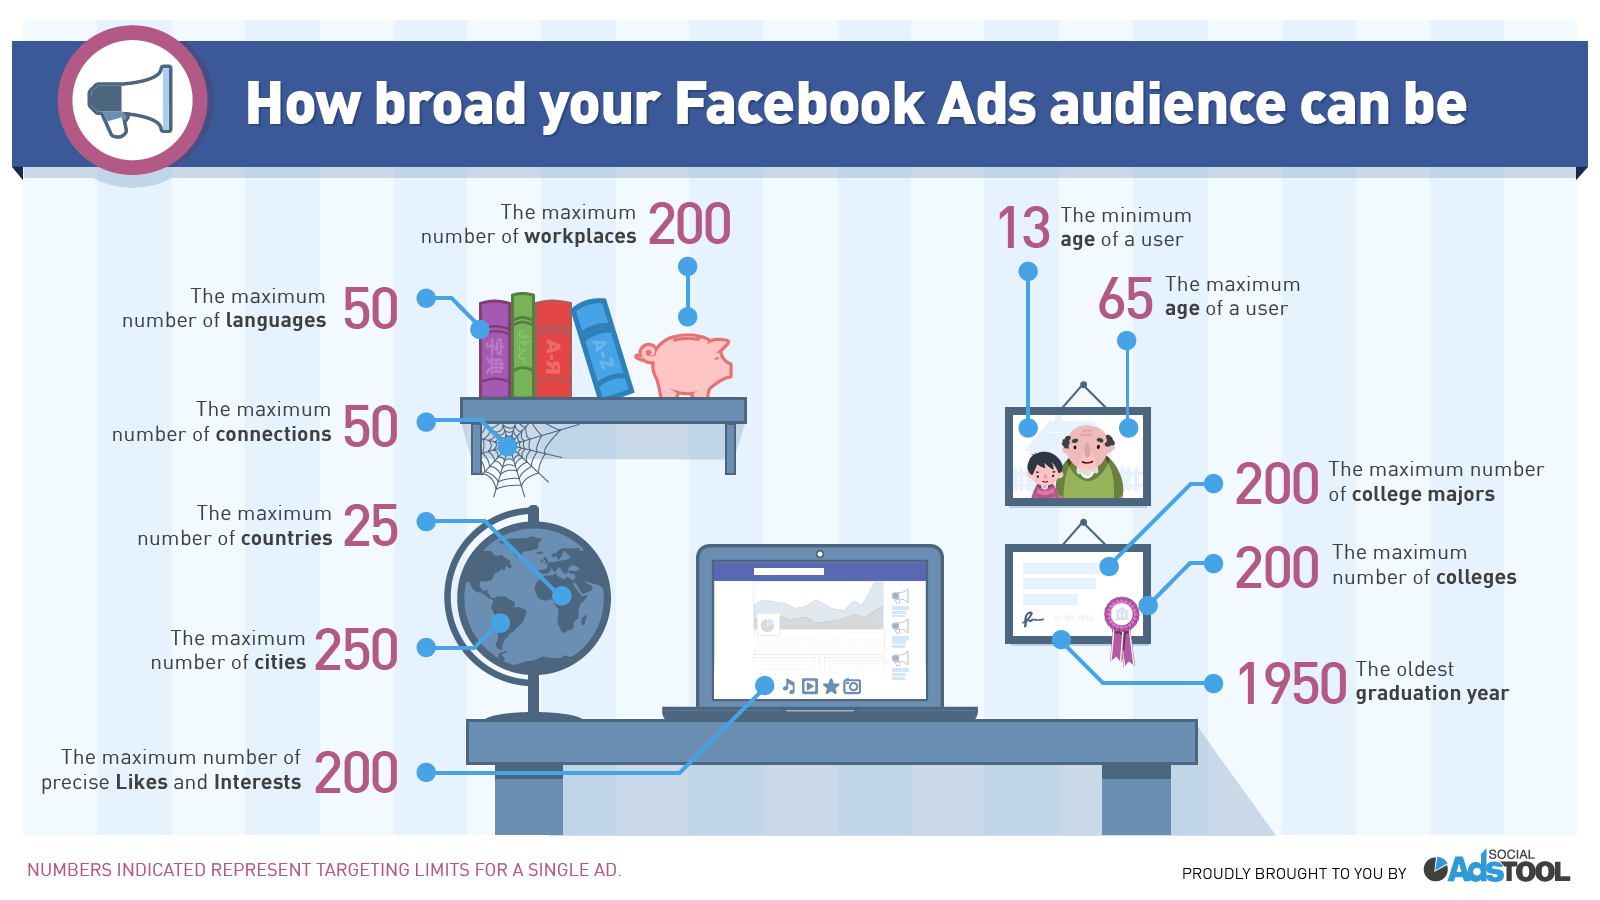 How Broad your Facebook ads audience can be